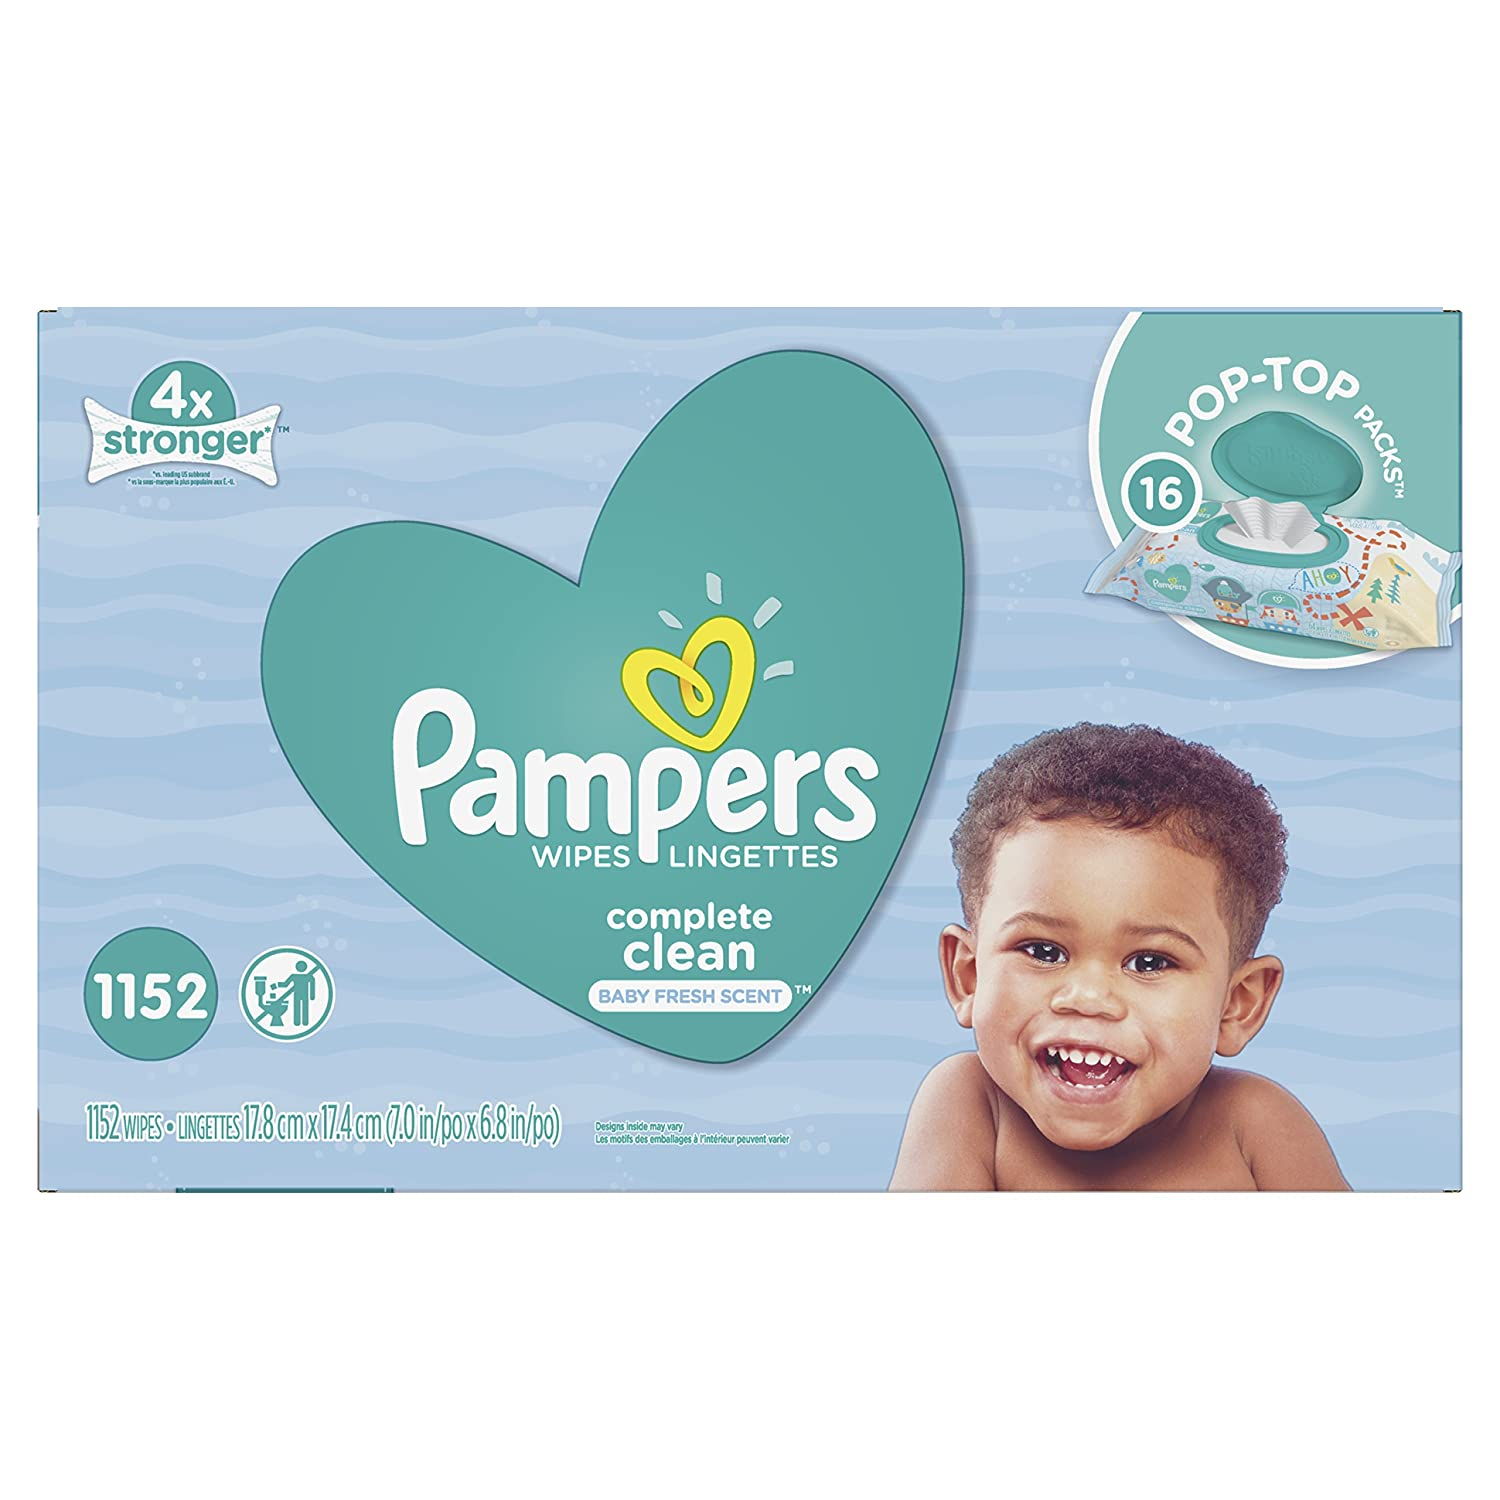 Pampers Baby Wipes Complete Clean SCENTED 16X Pop-Top, 1152 Count Procter and Gamble